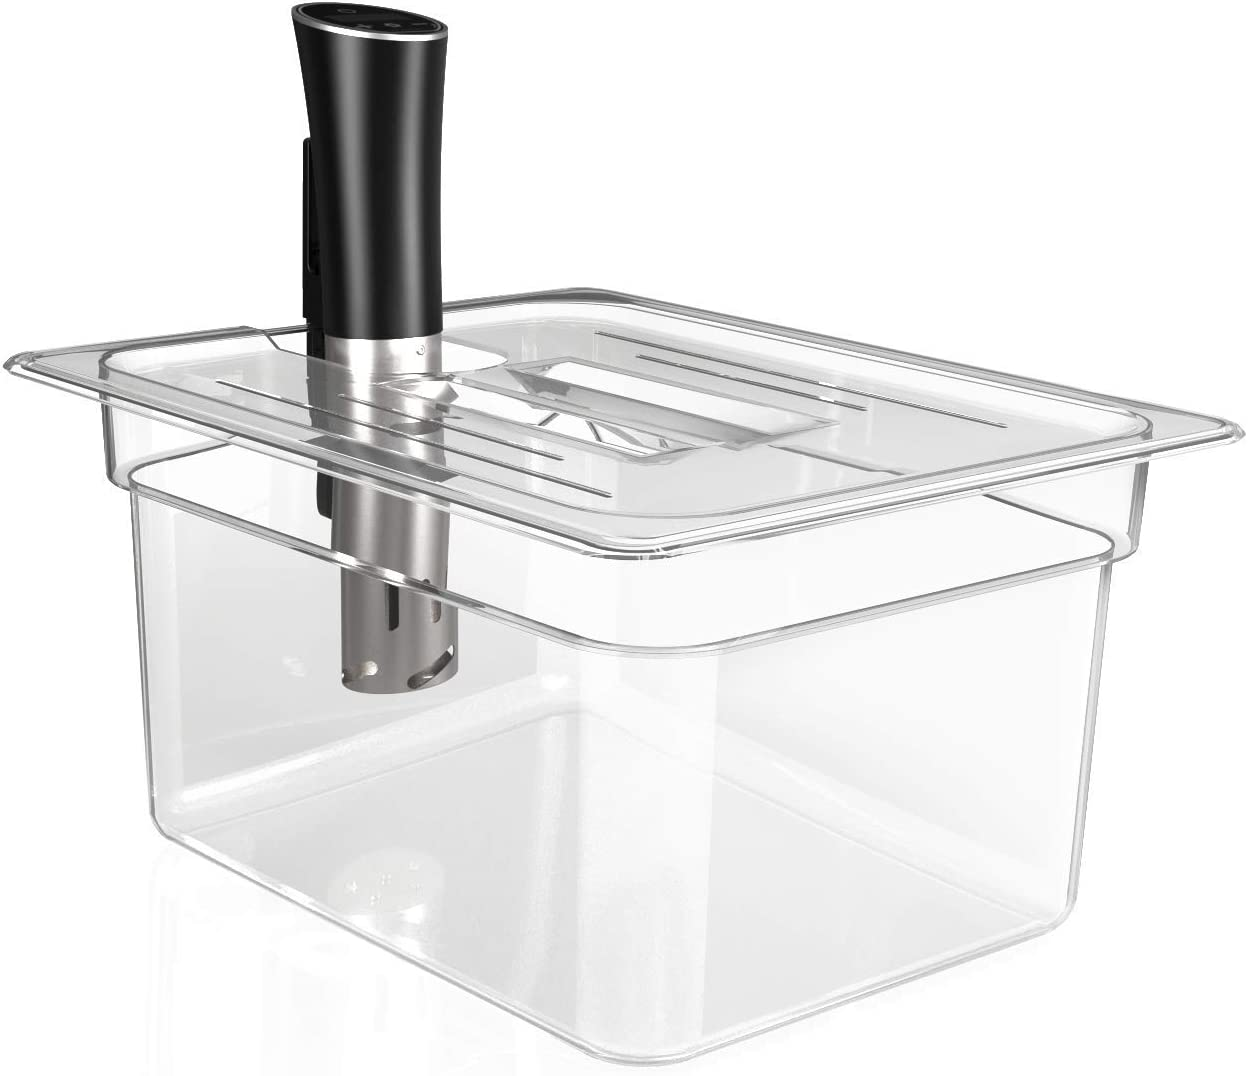 Sandoo Sous Vide Container 12 Quart with Lid-Sous Vide Accessories Kit with Lid for Most Sous Vide Cookers, Long Service Life with PC material, HK0400